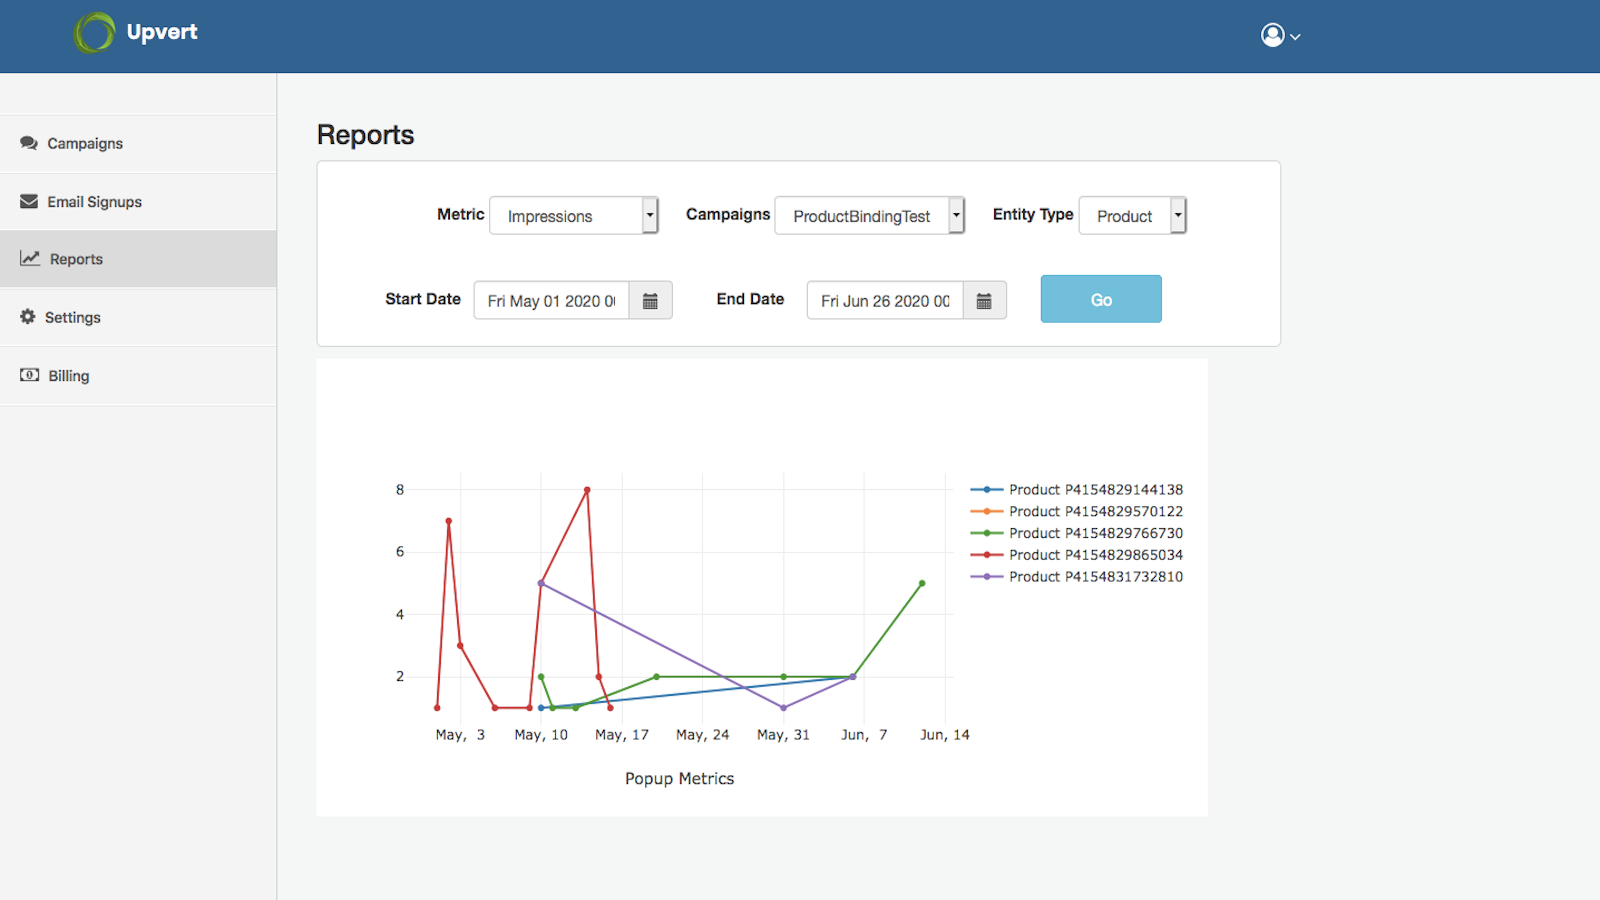 App User Interface - Campaign Performance Reports